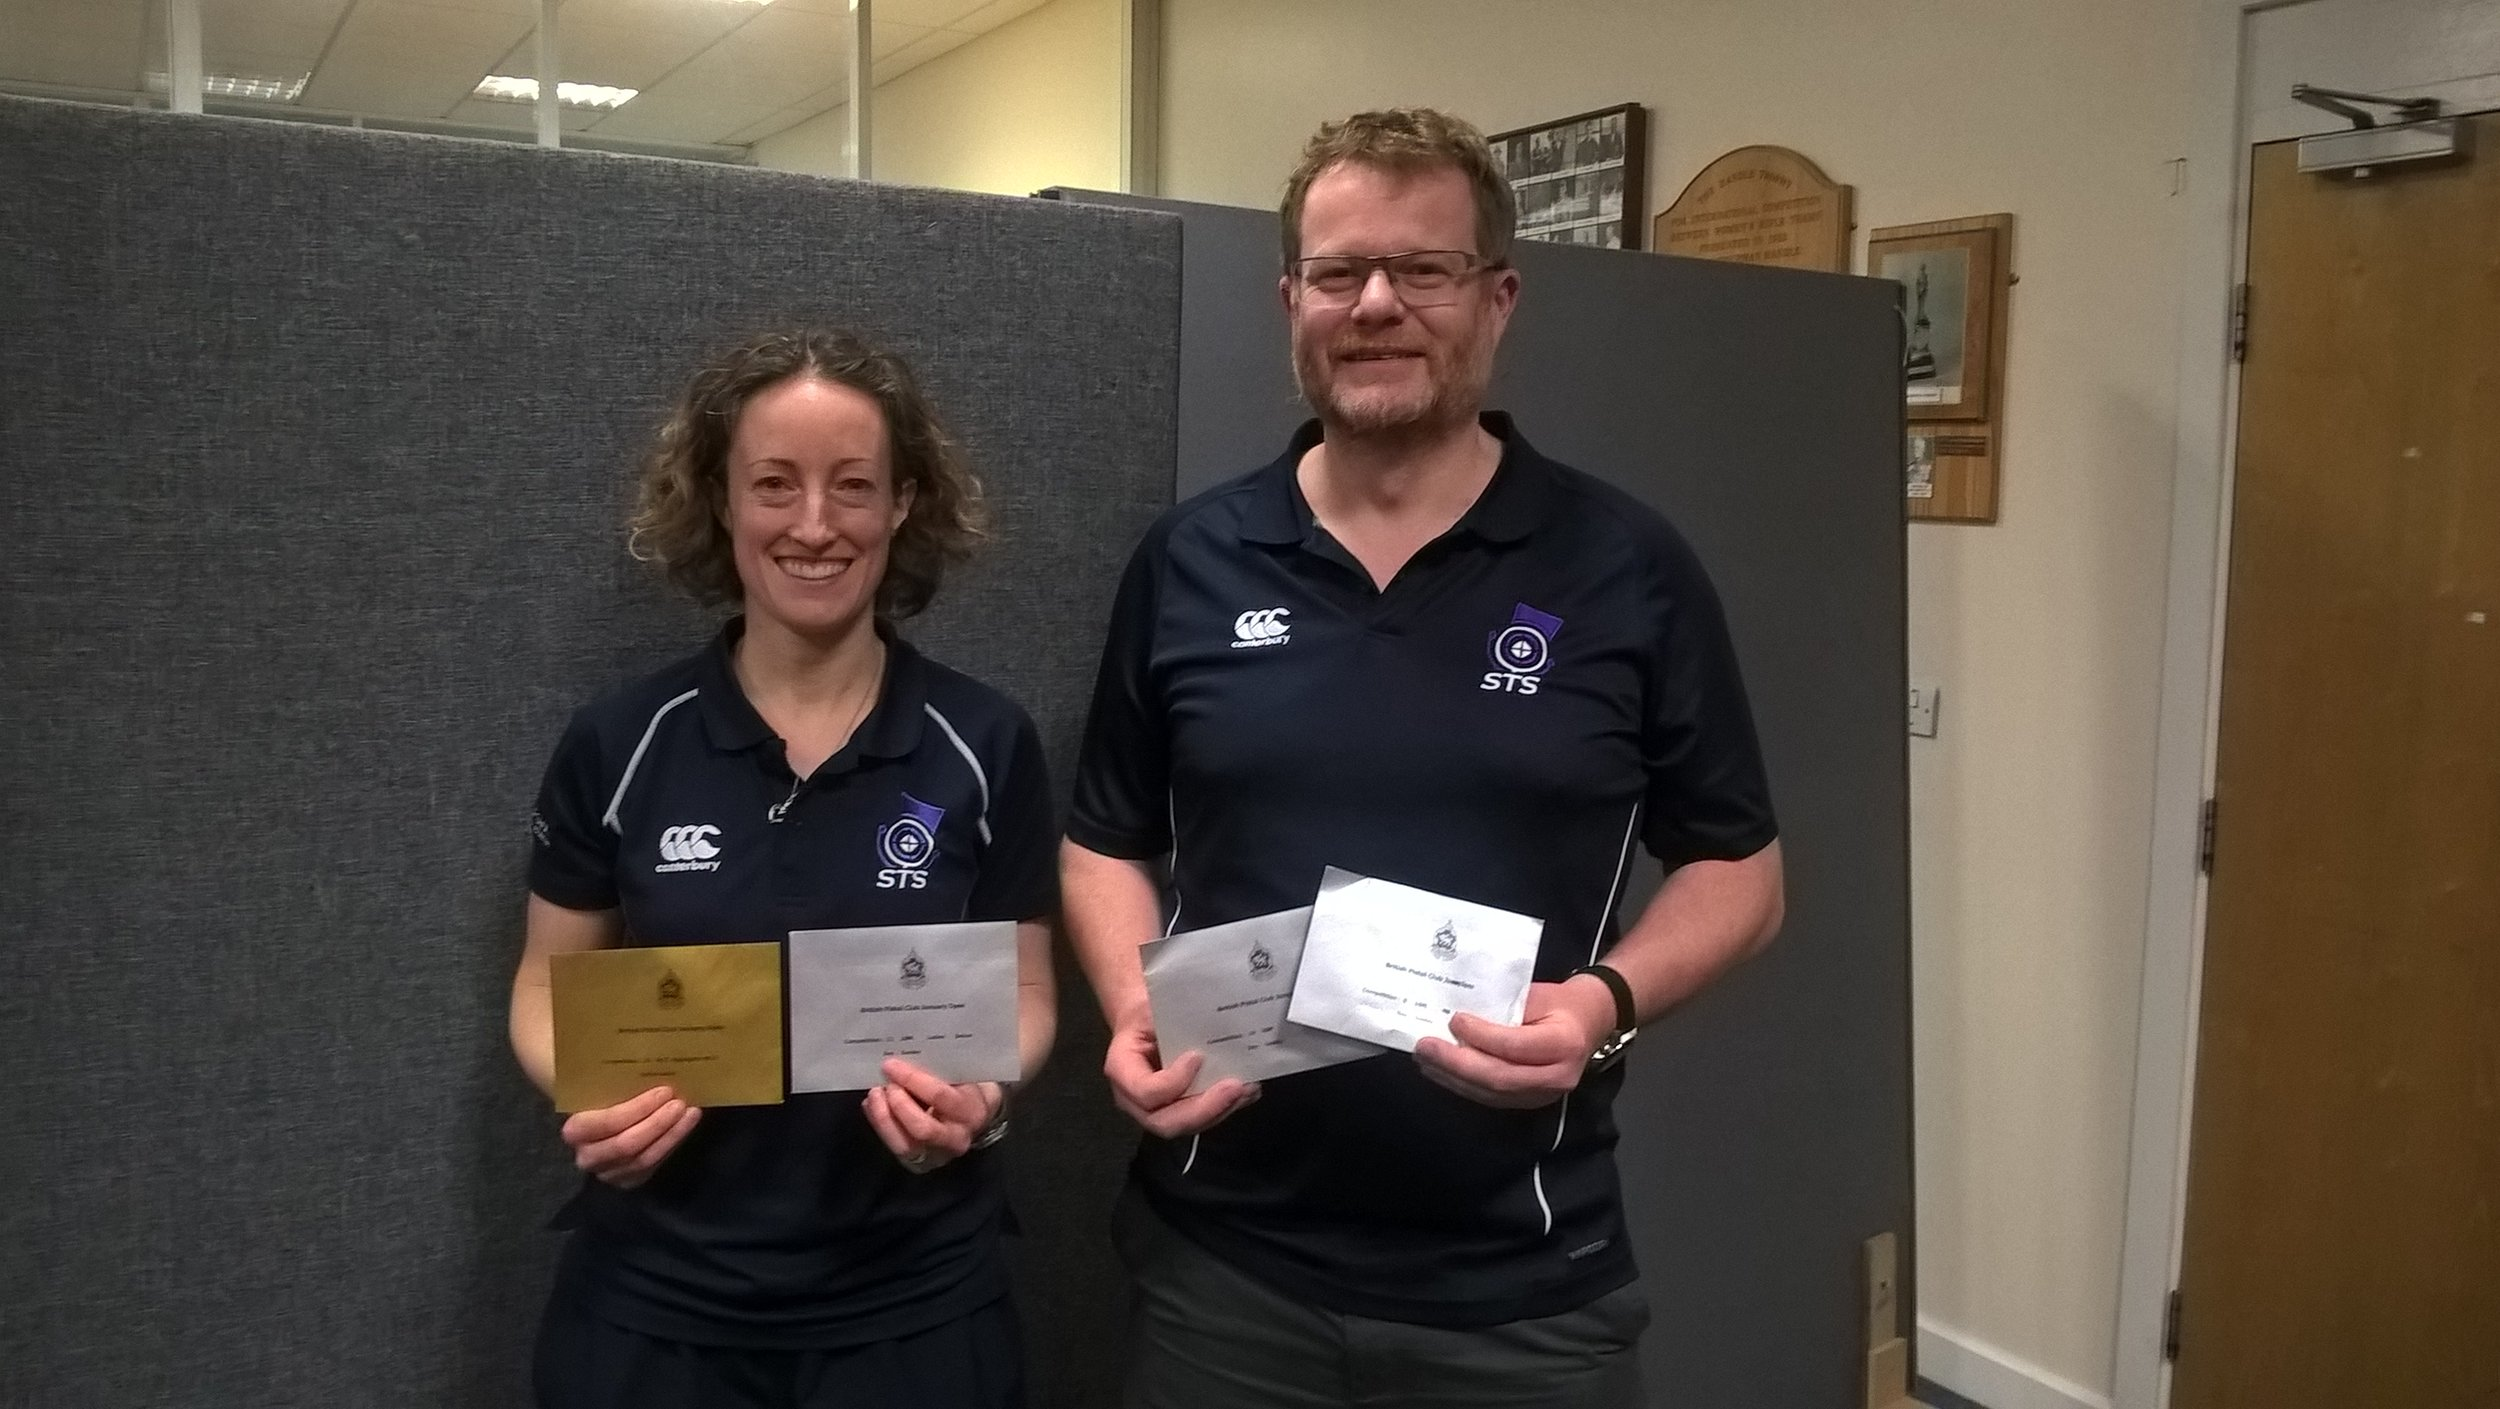 Continued success for Caroline & Alan on Day 2 of the BPC Champs